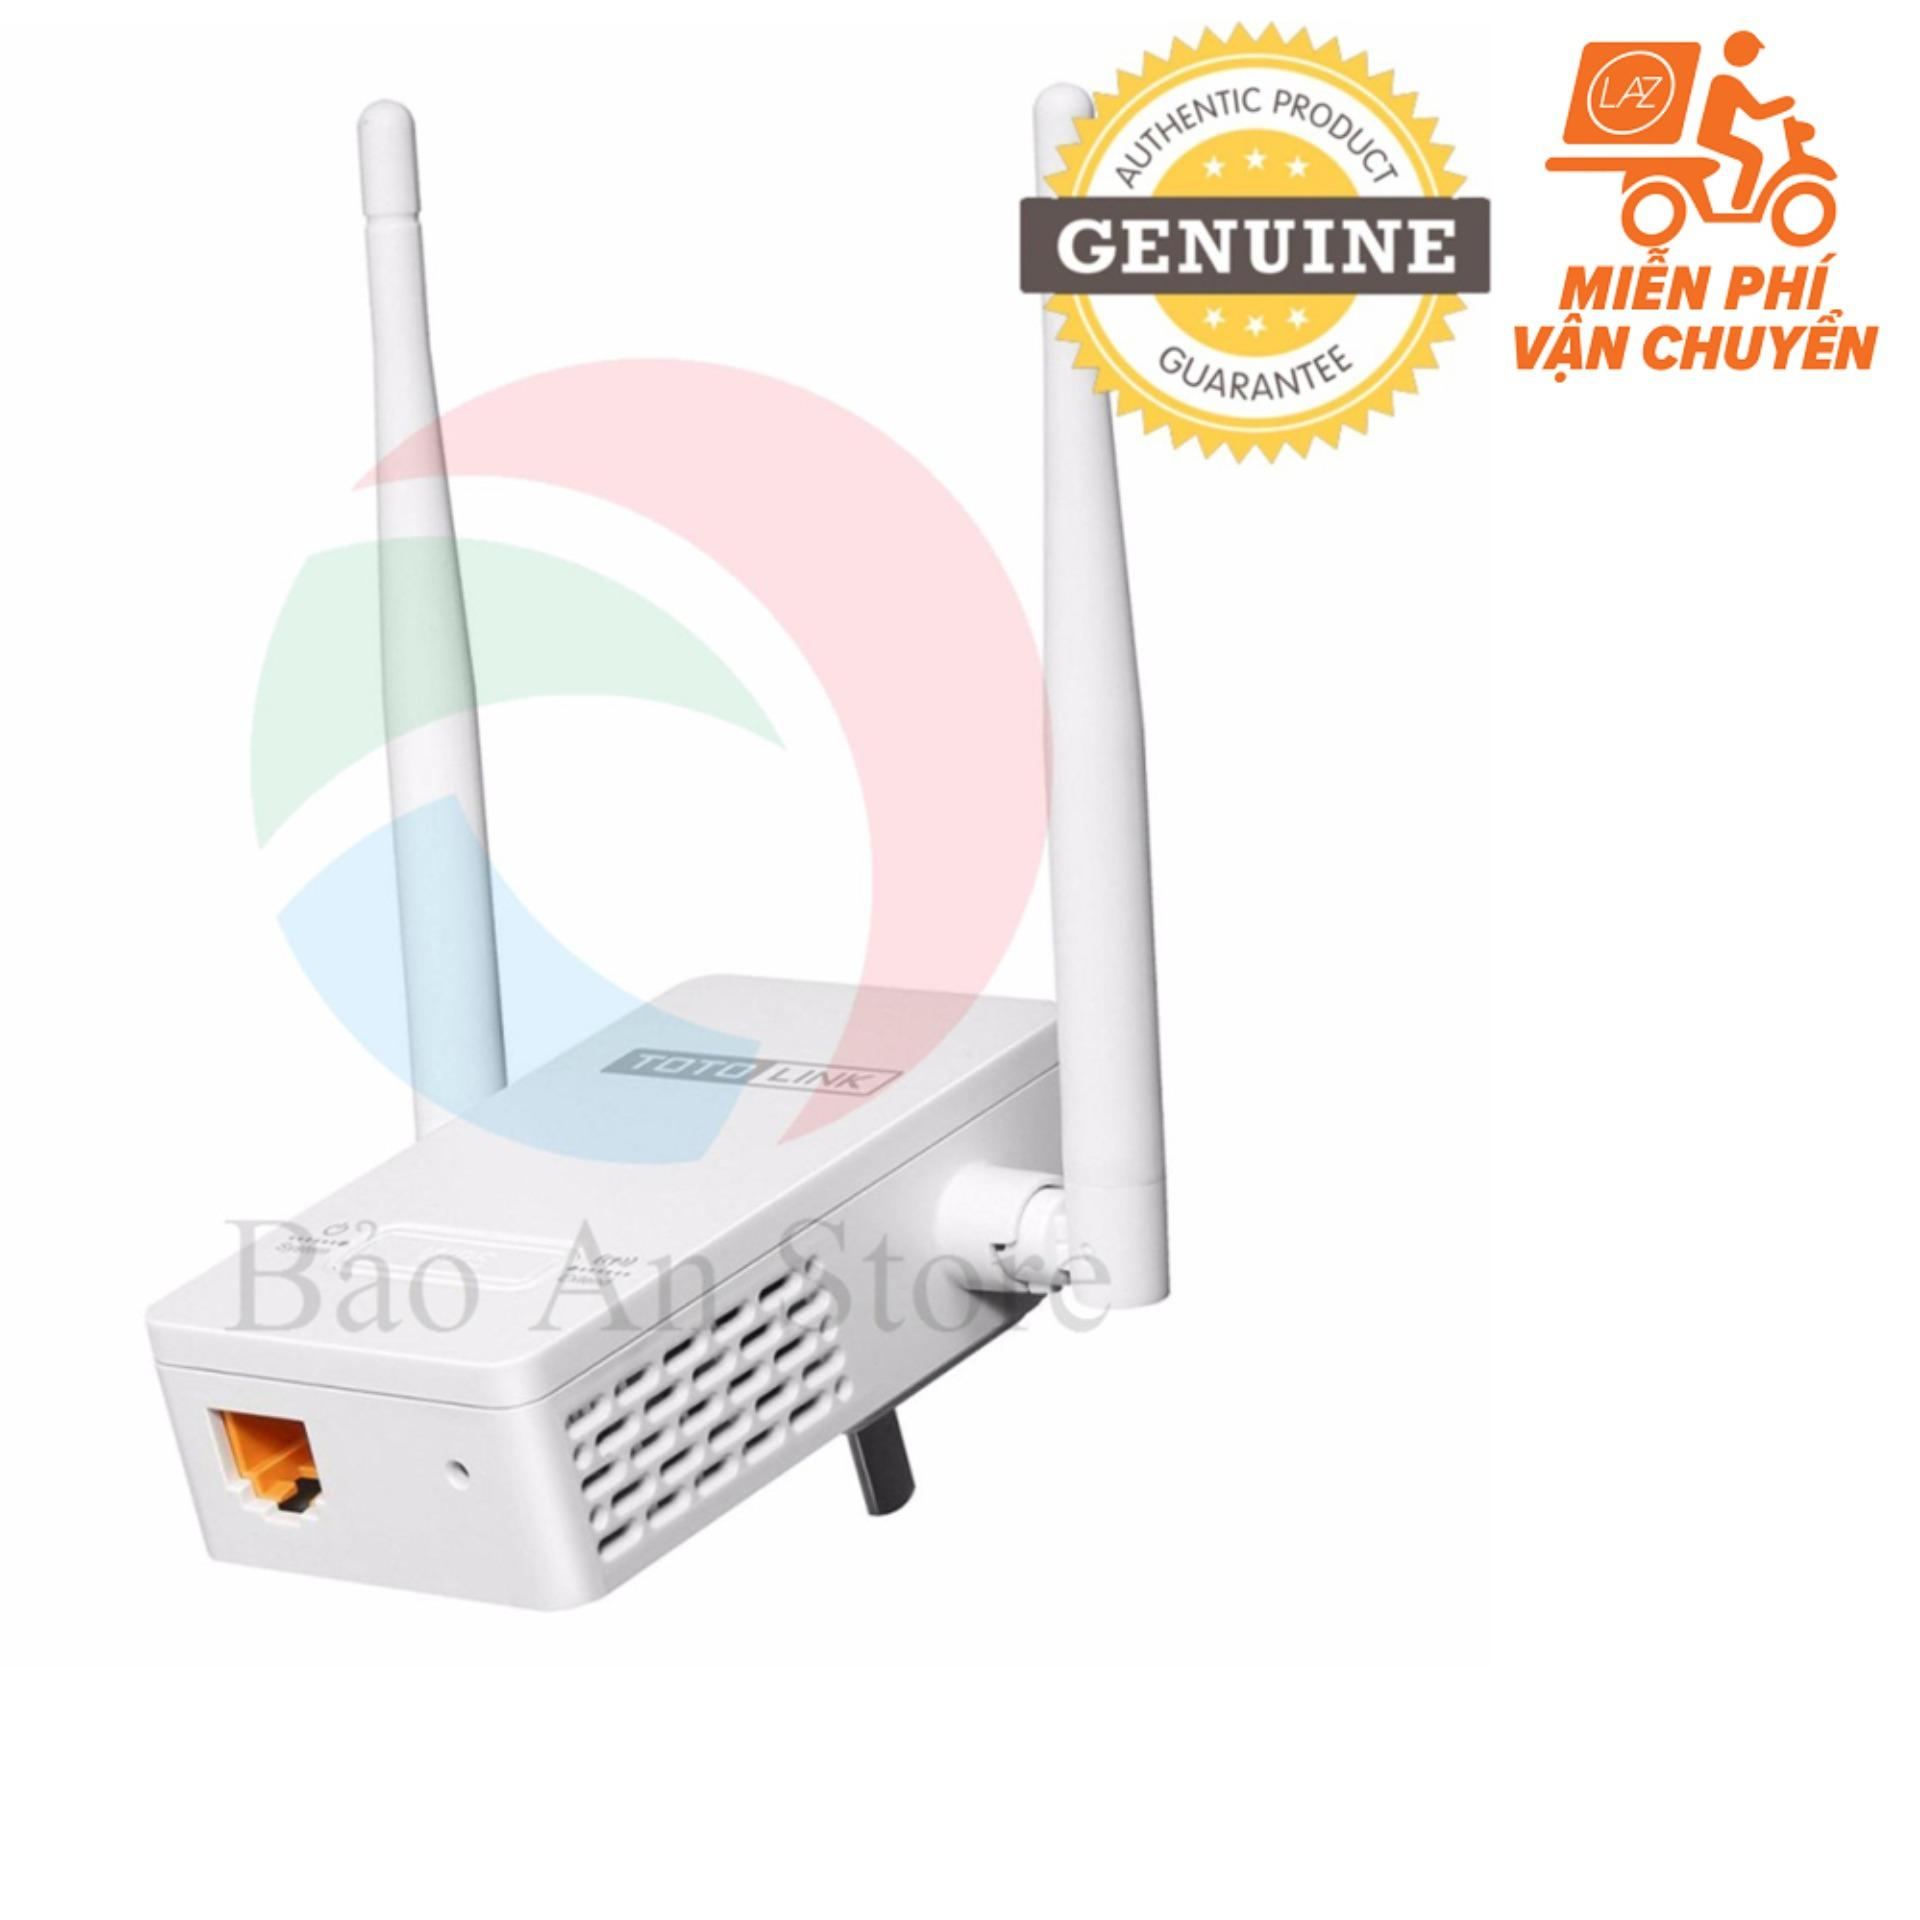 Bán Thiết Bị Kich Song Wifi Repeater Totolink Ex200 Trắng Rẻ